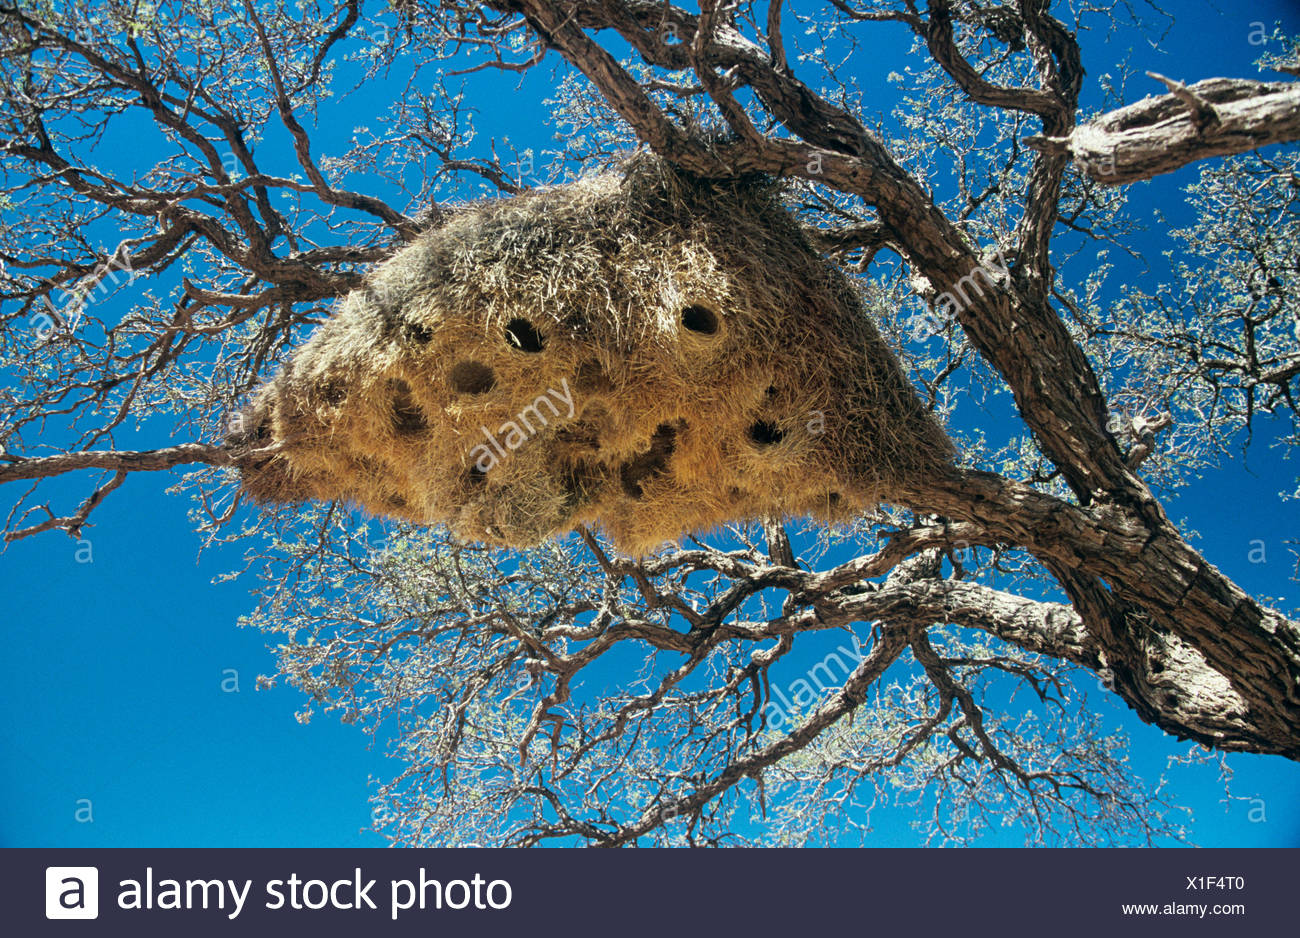 Nest of weaver bird - Stock Image